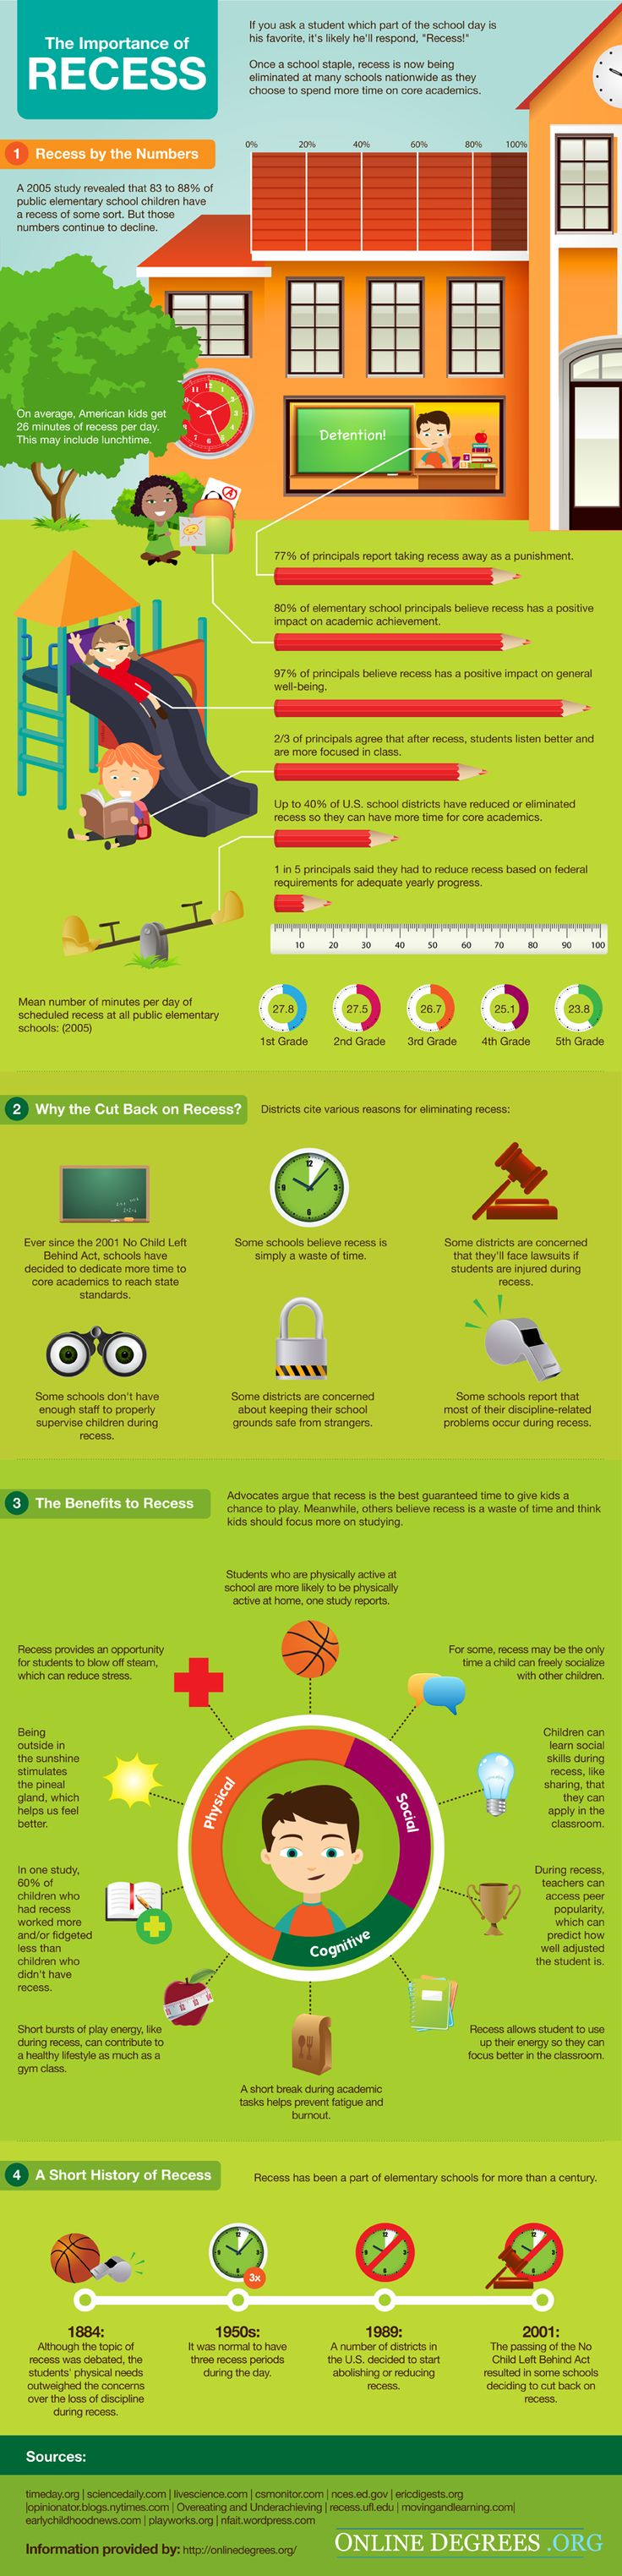 The Importance of Recess #infografia #infographic #education